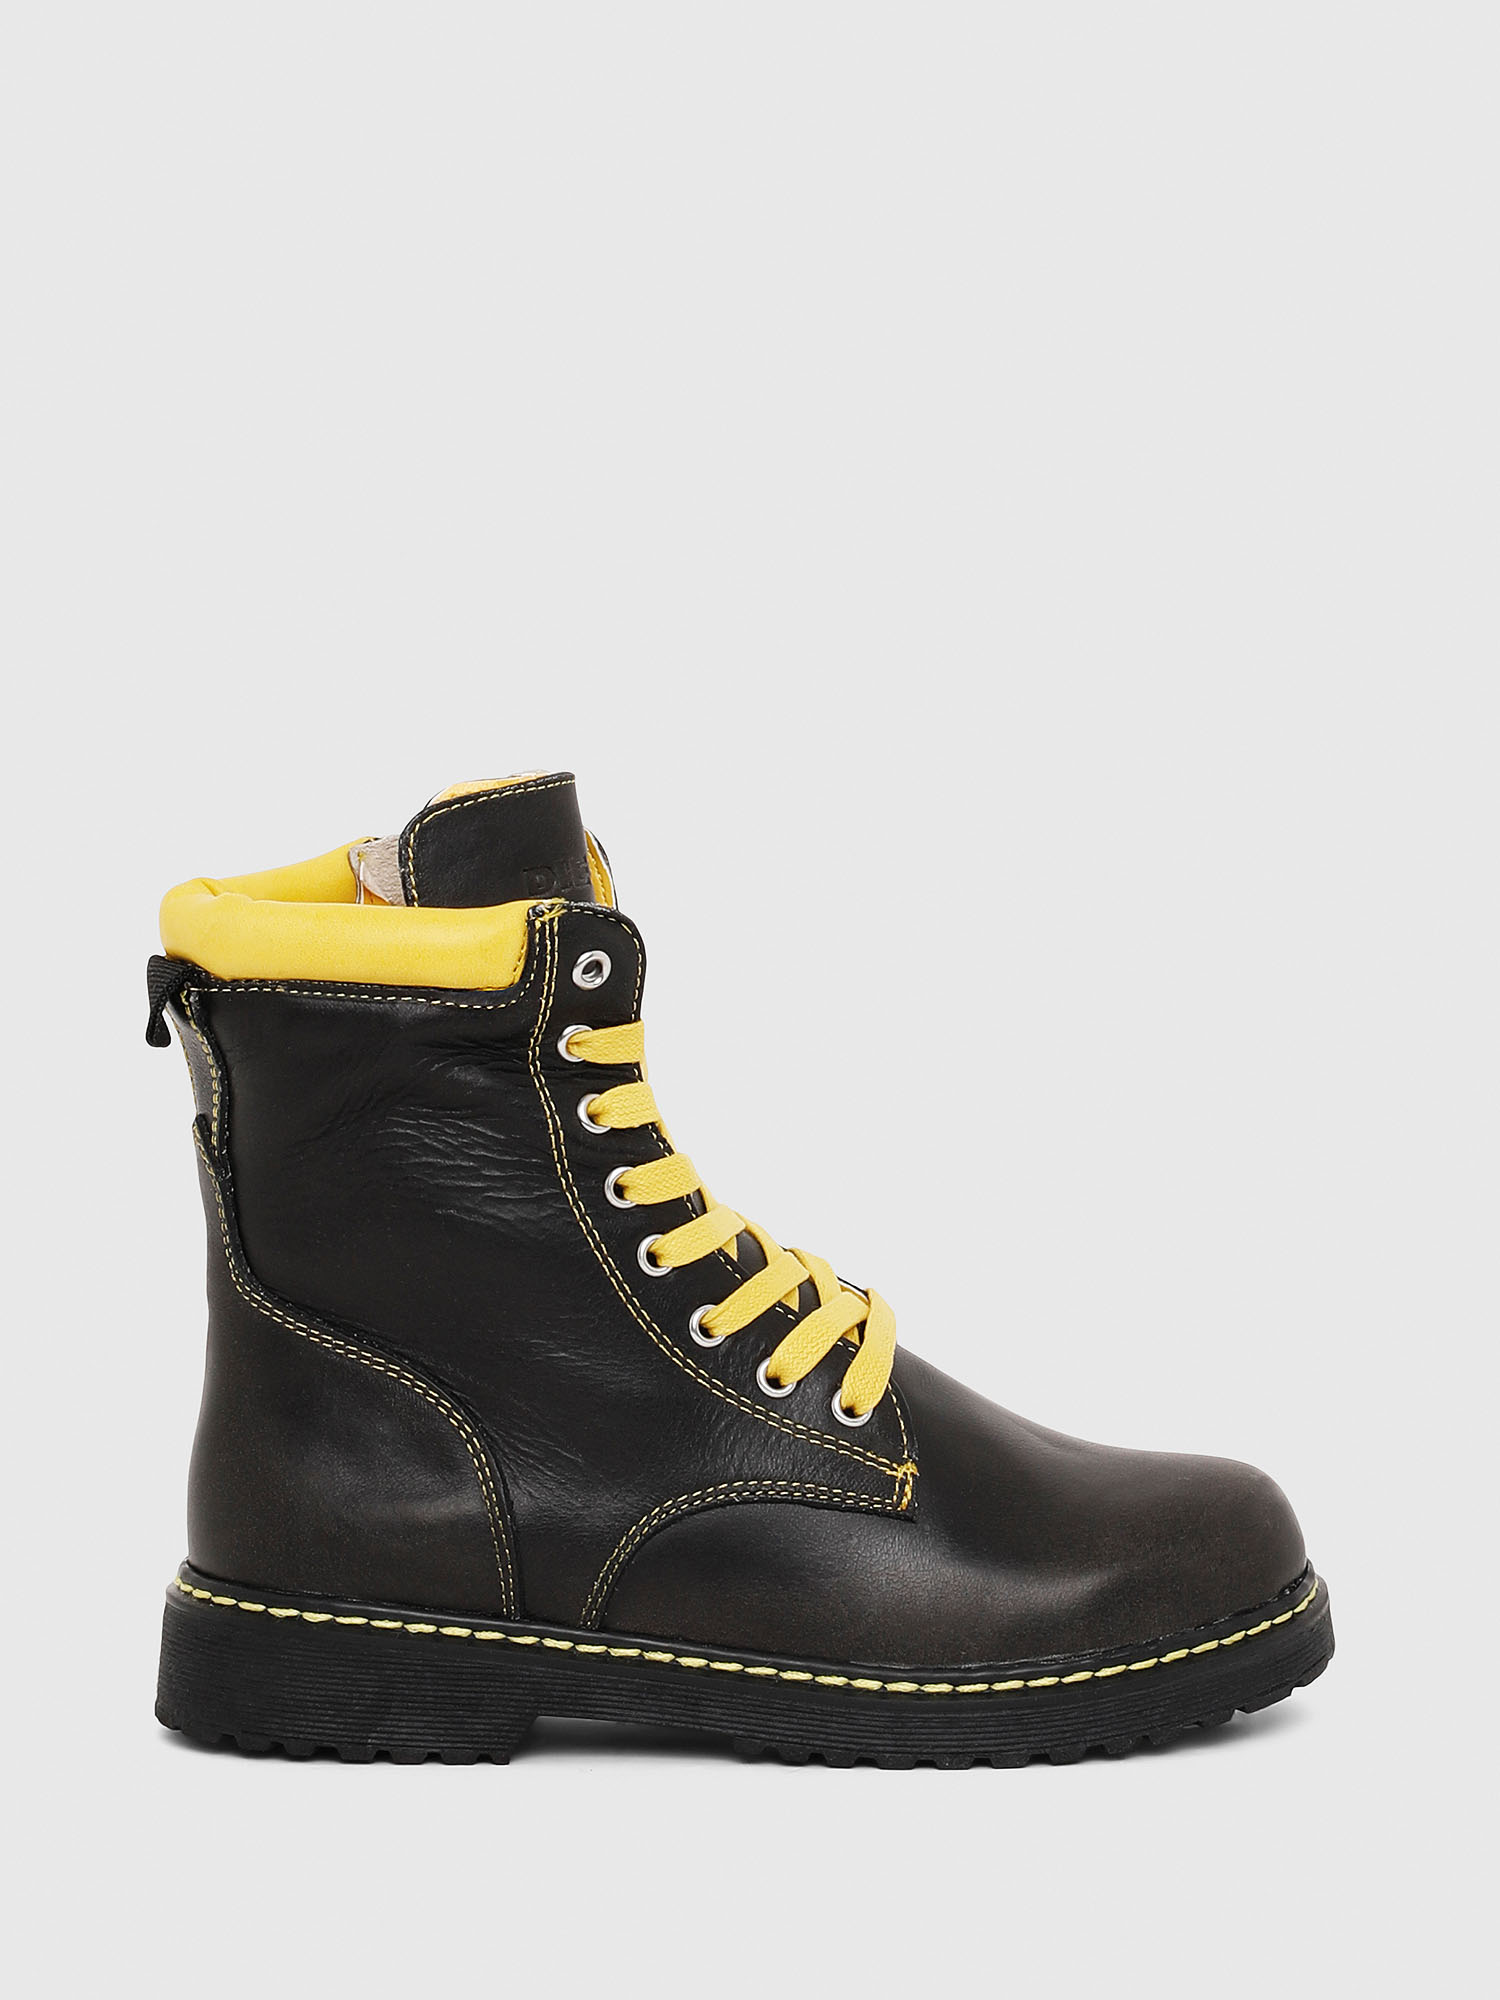 Diesel - HB LACE UP 04 CH,  - Calzado - Image 1